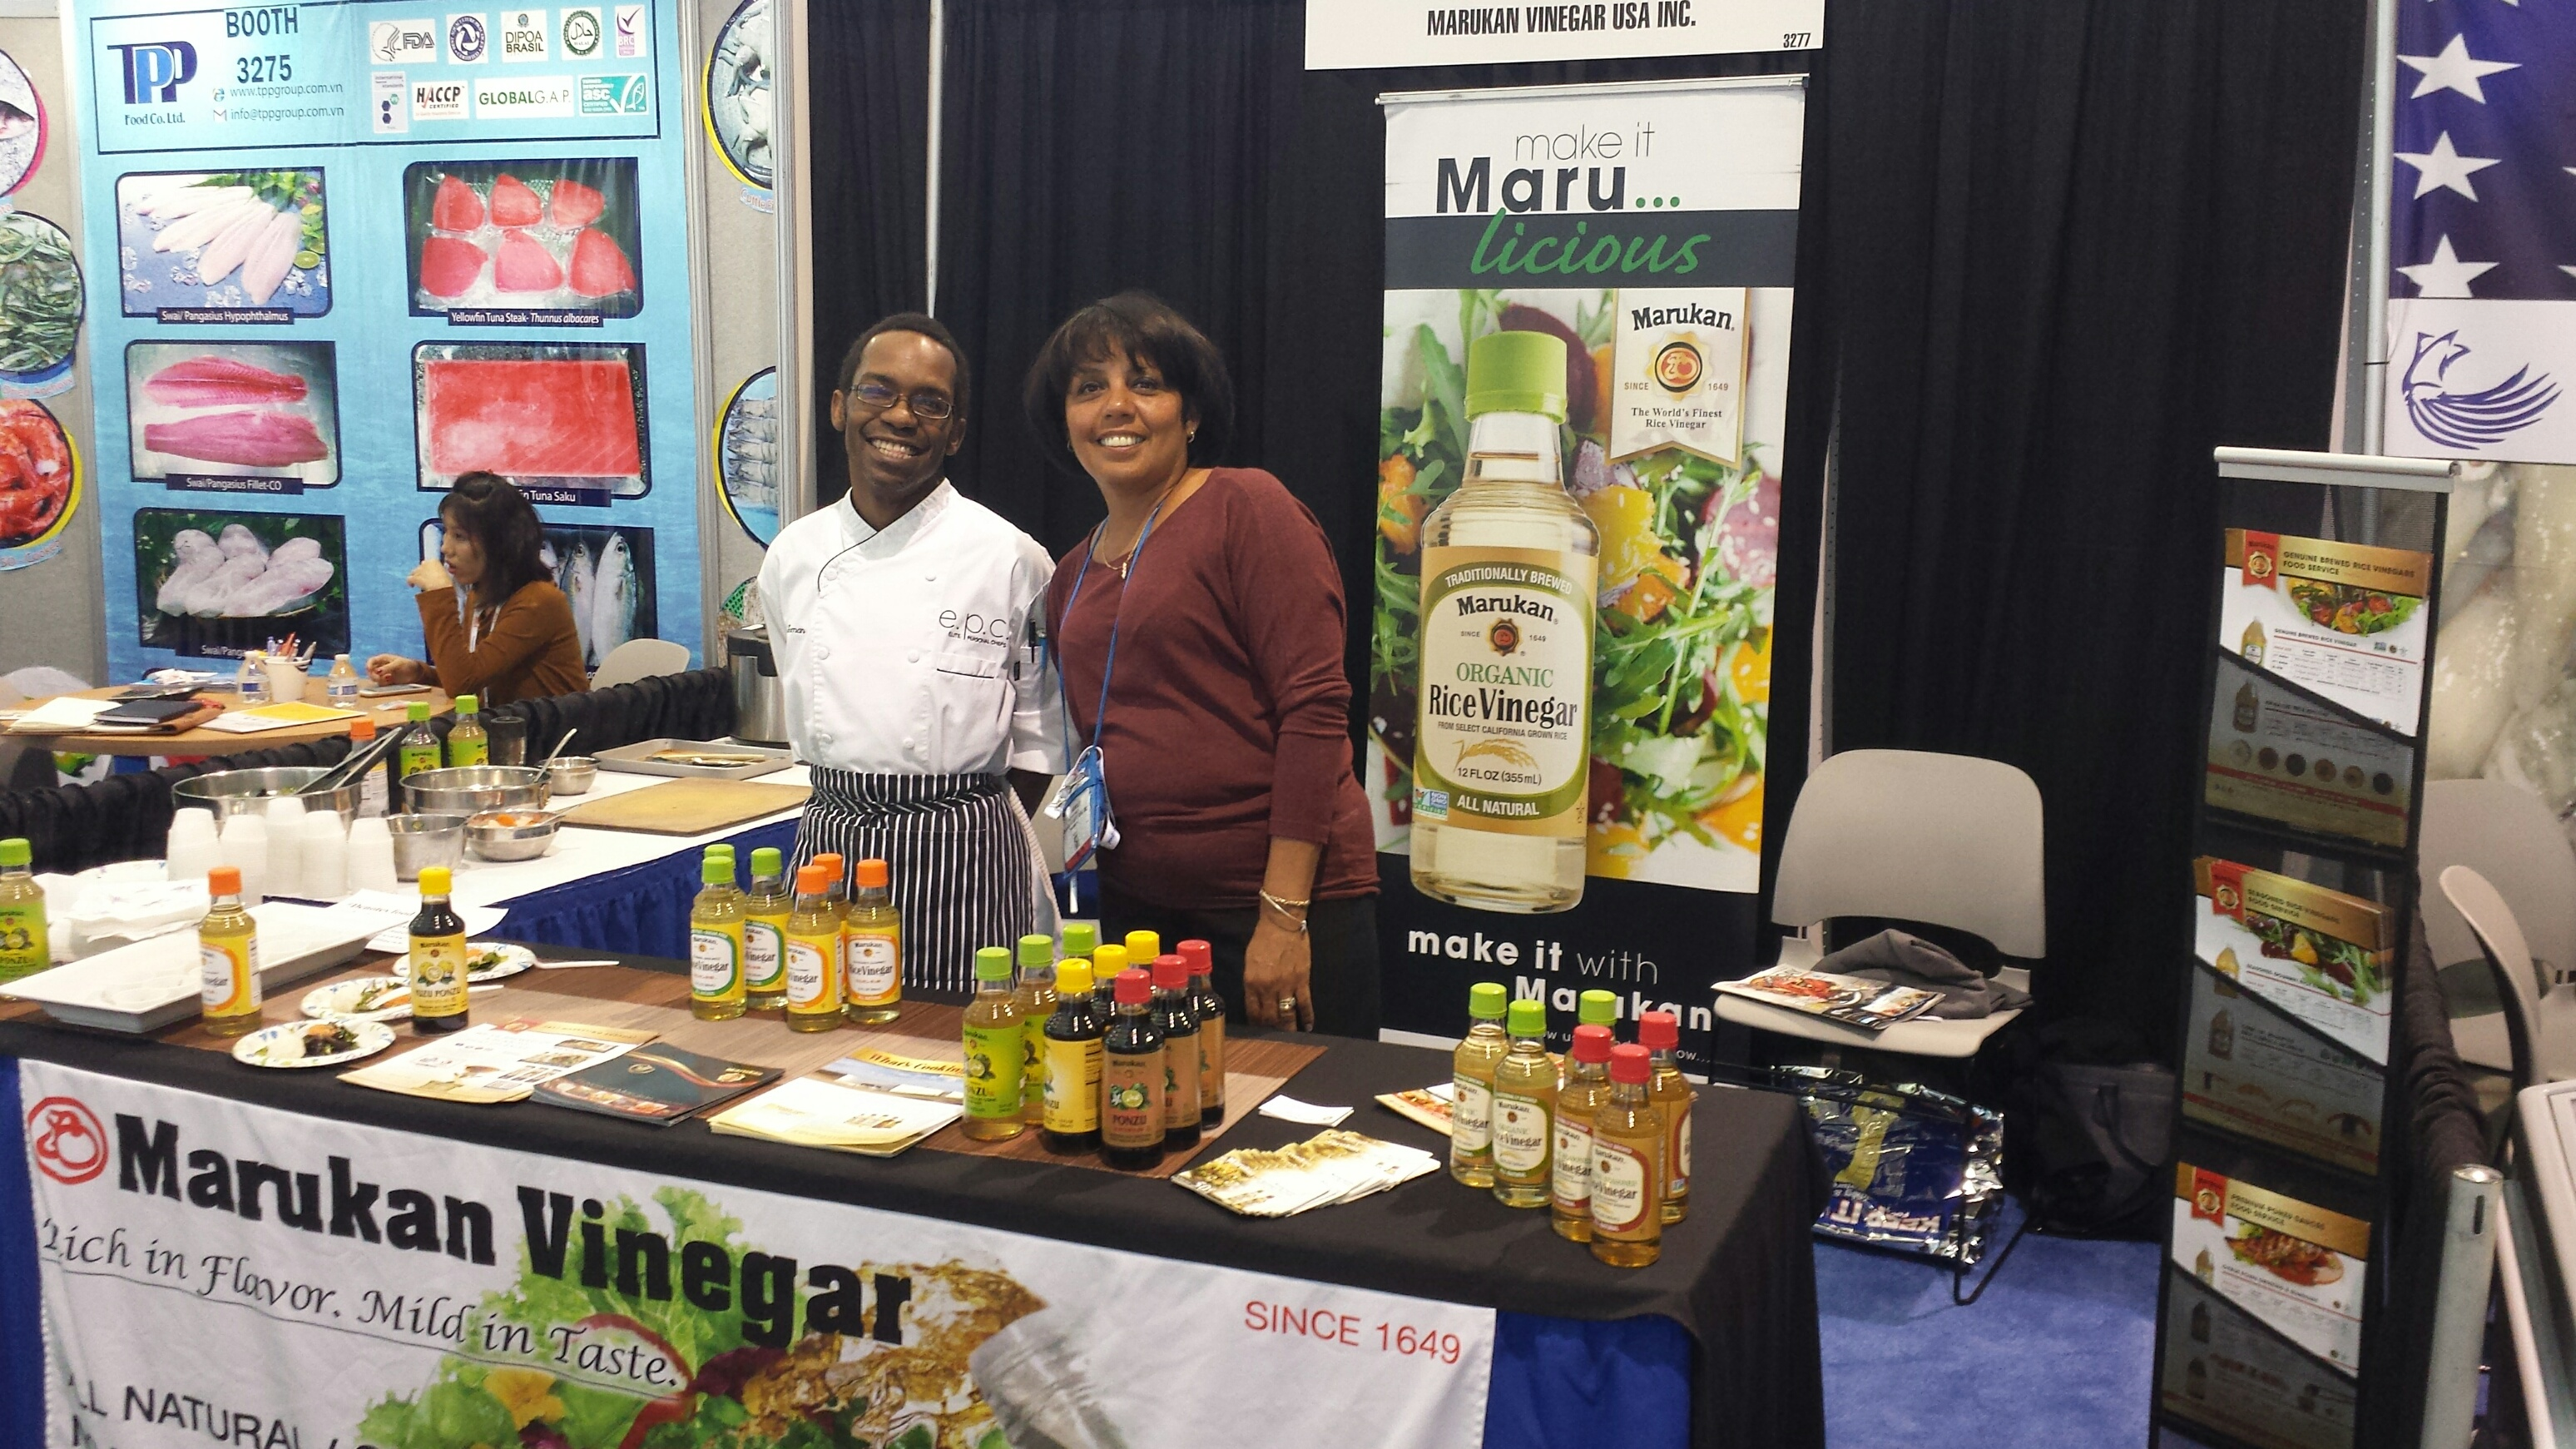 Ceviche and Salad Dishes Featured by Marukan at the Seafood Expo North America